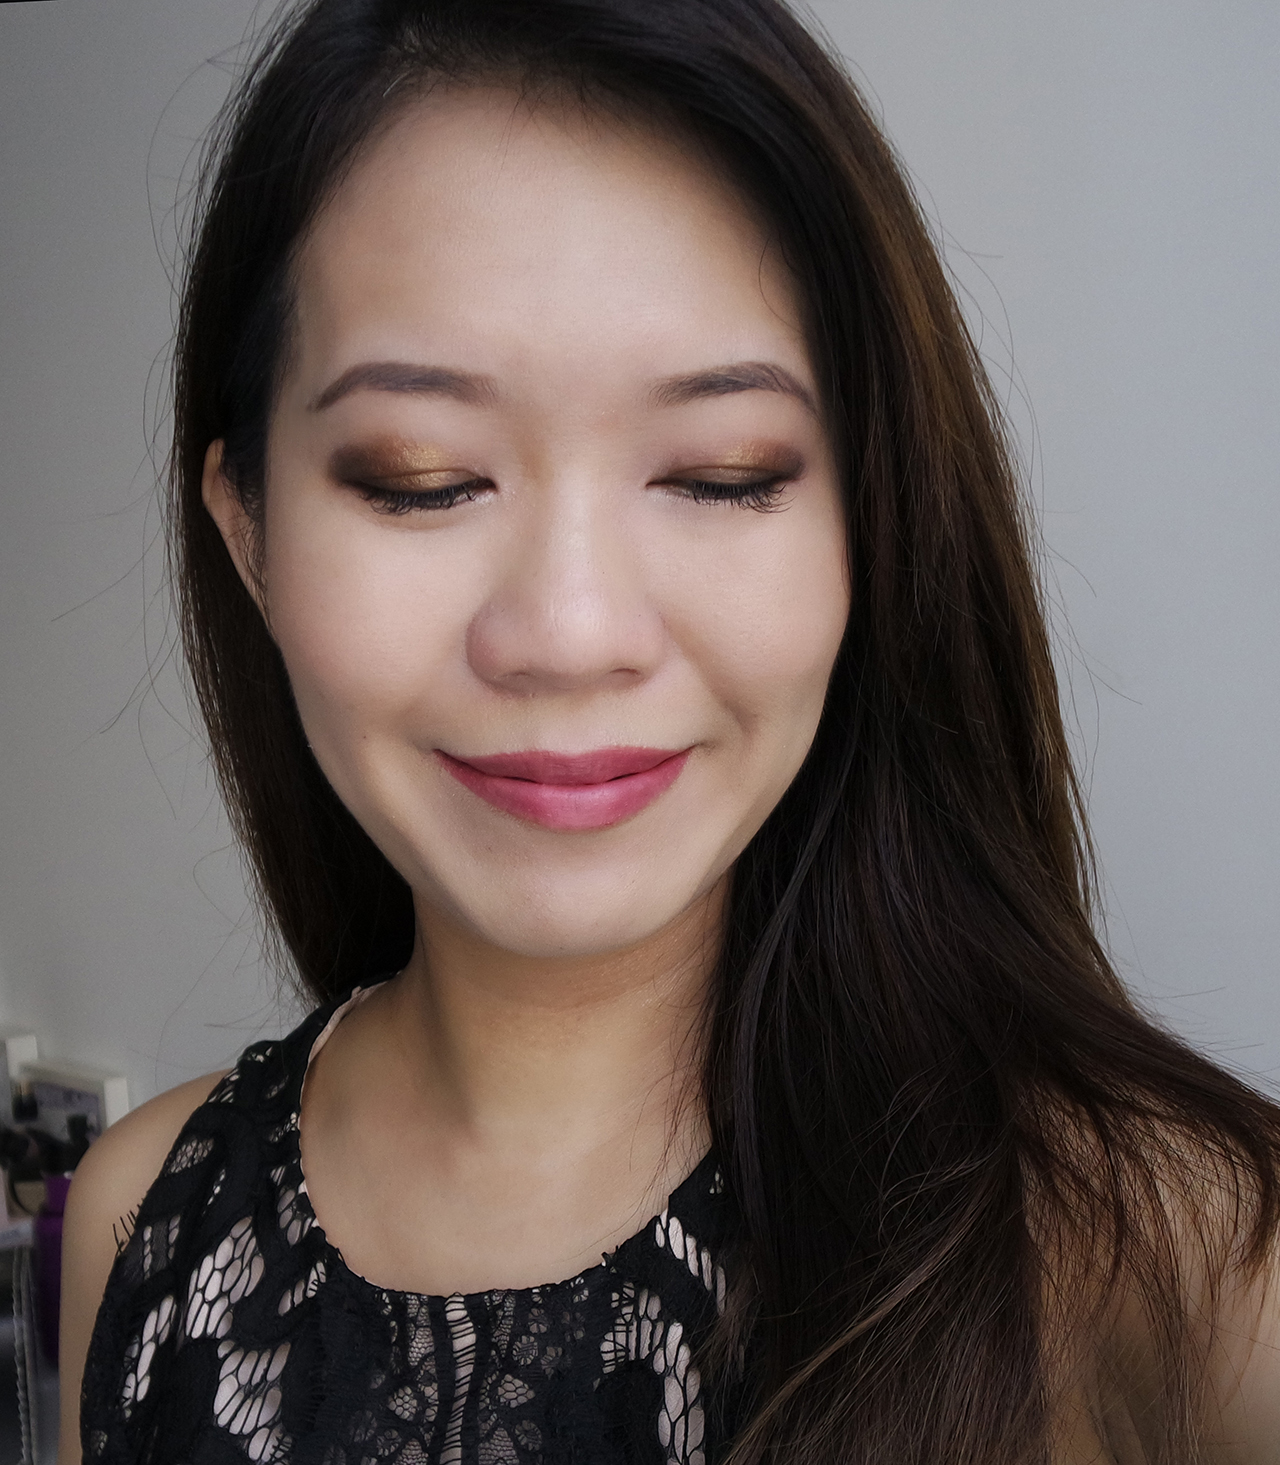 Marc Jacobs Eye-conic Multi-finish Eye Palette Glambition makeup look